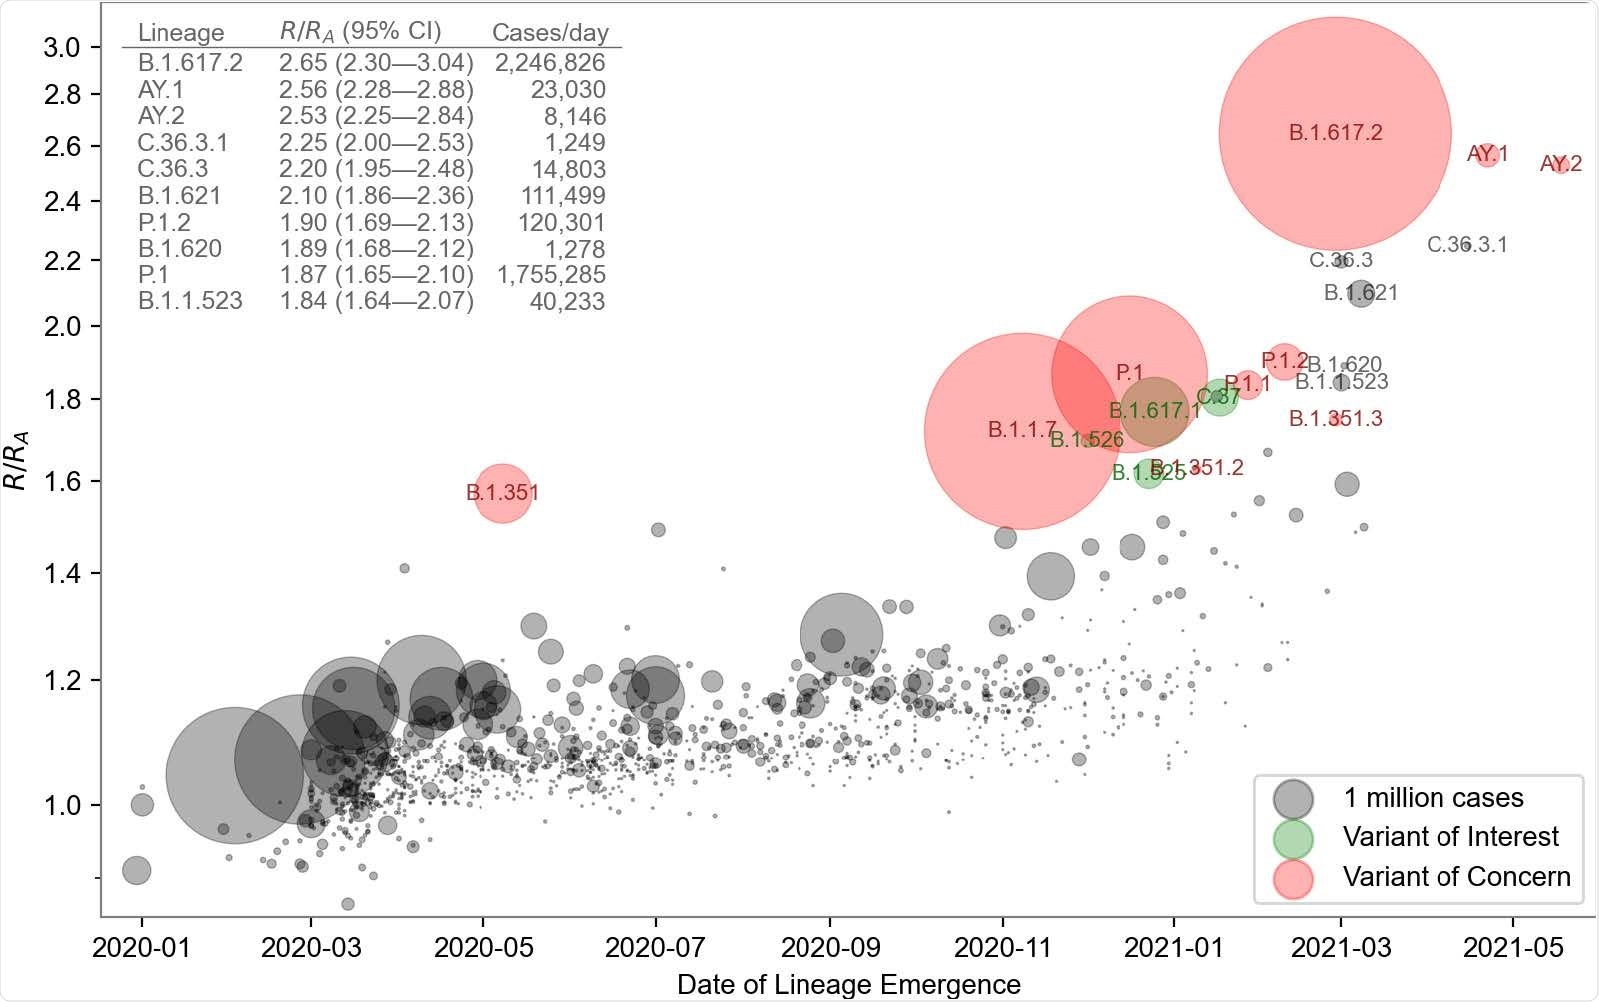 Growth rate versus date of lineage emergence. Circle size is proportional to cumulative case count inferred from lineage proportion estimates and confirmed case counts. Inset table lists the 10 most transmissible lineages inferred by the model. R/RA: the fold increase in effective reproductive number over the Wuhan (A) lineage, assuming a fixed generation time of 5.5 days.